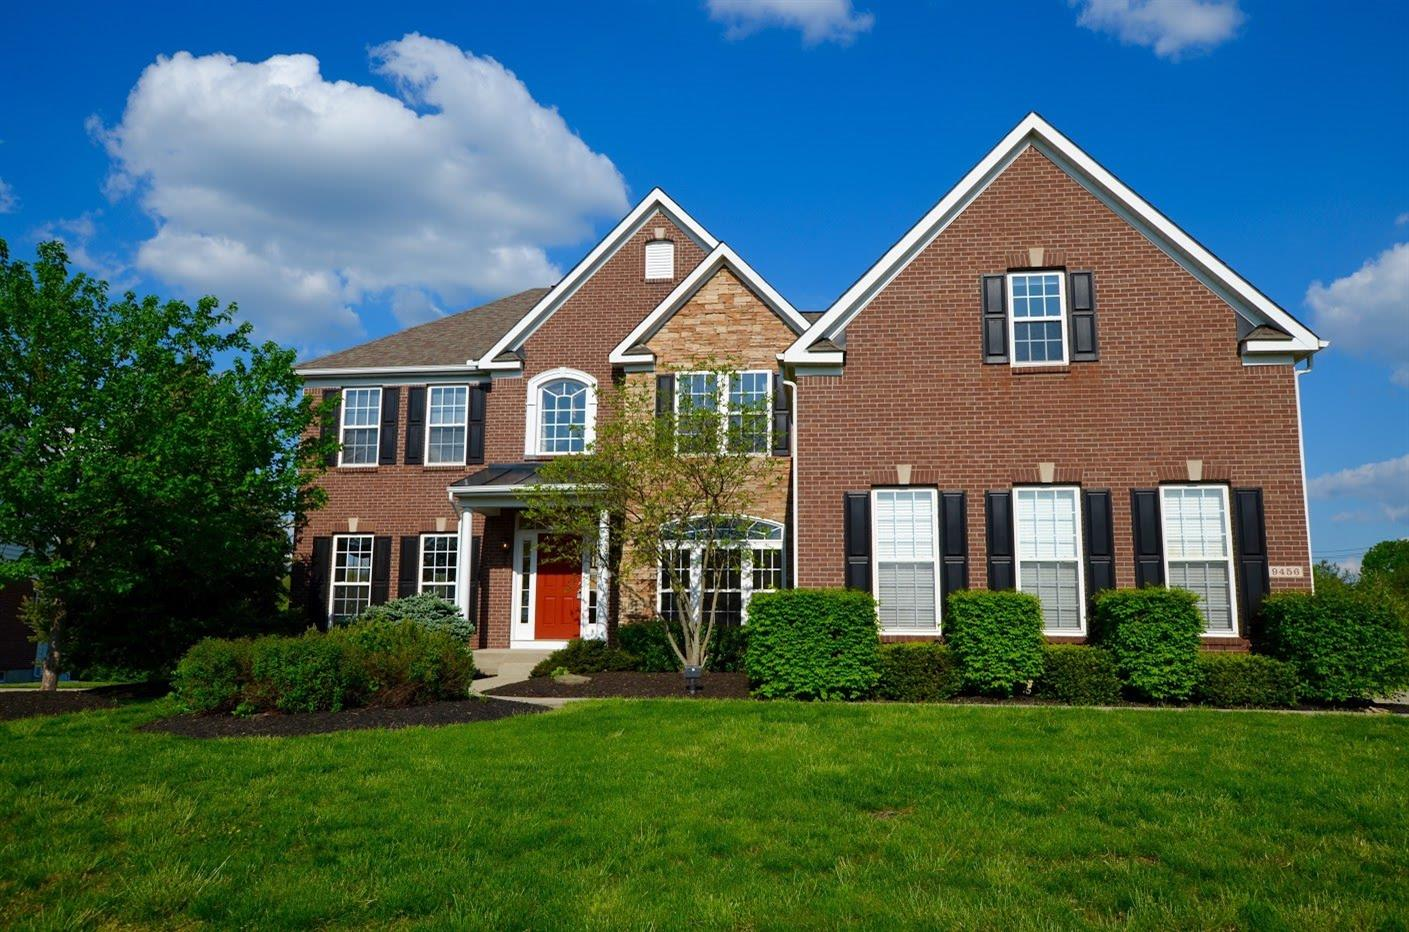 9456 Amber Ln West Chester - East, OH